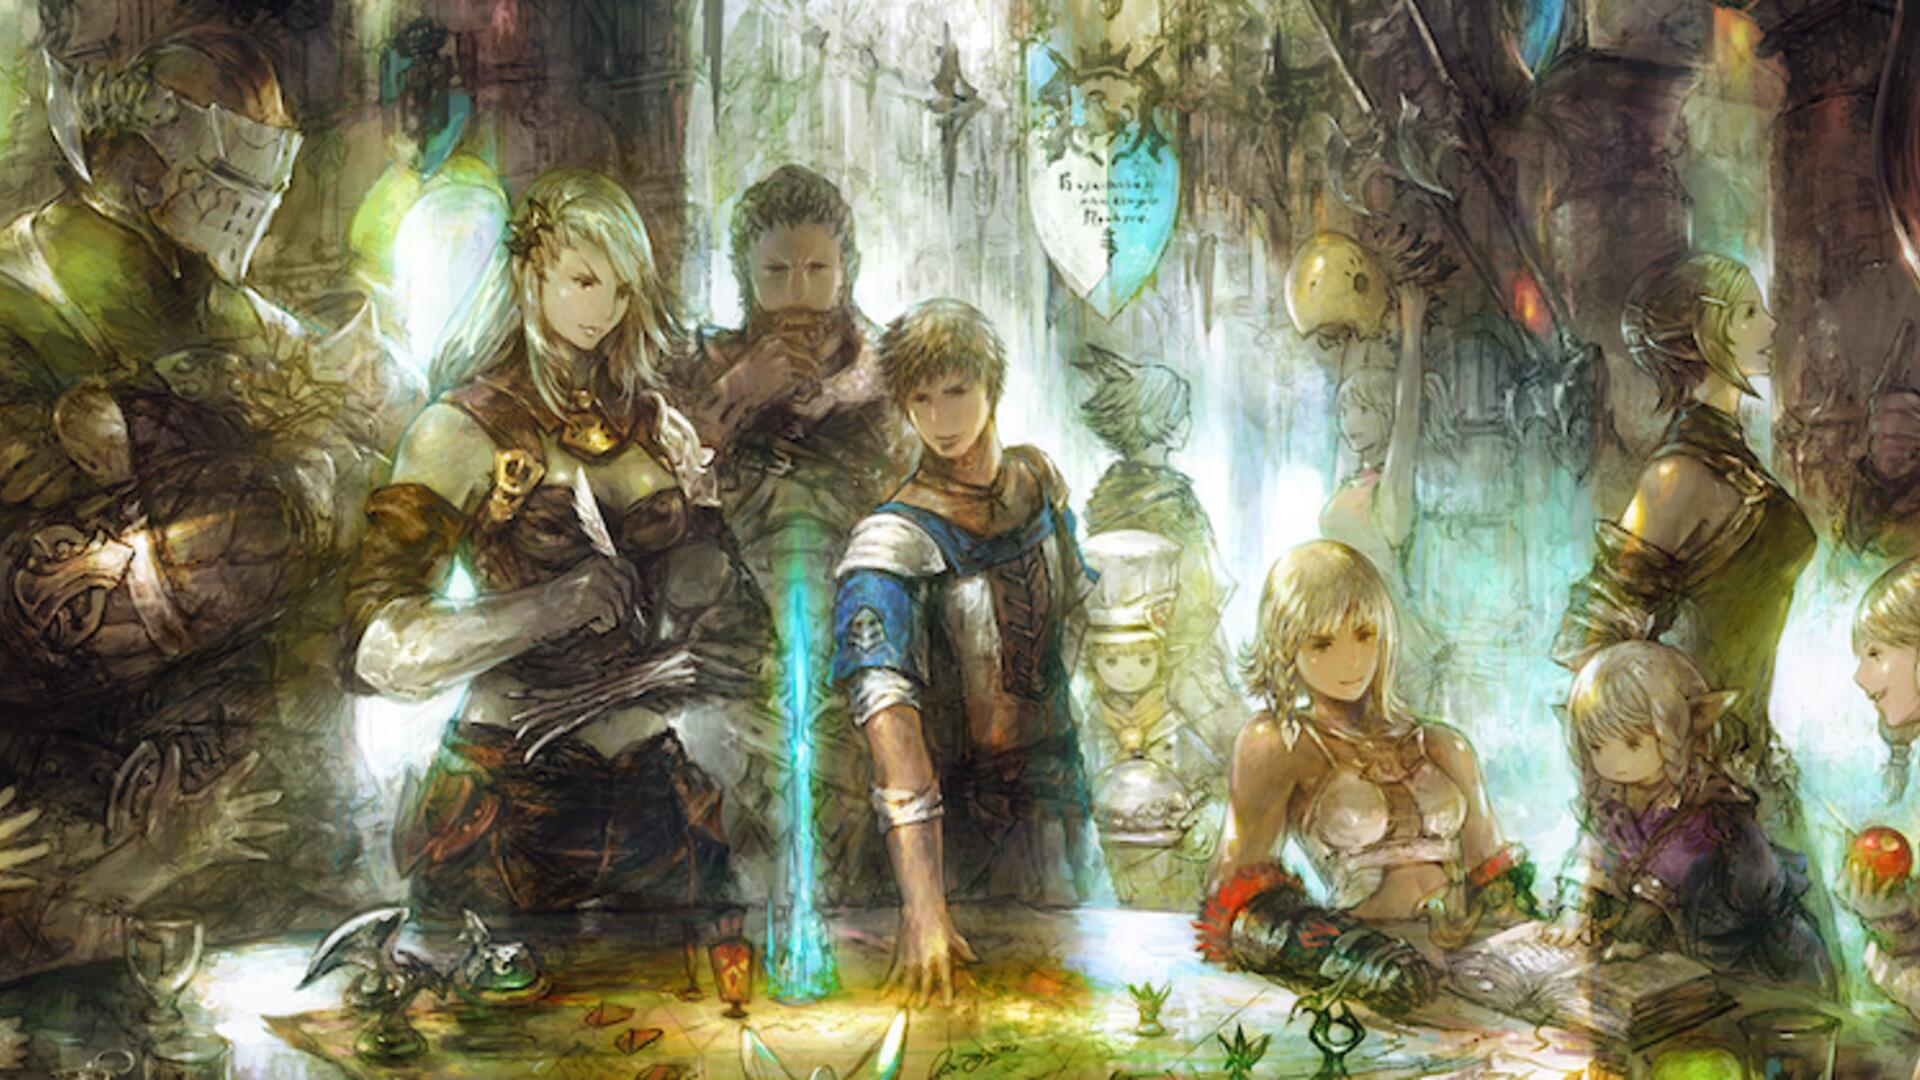 Final Fantasy XIV Guide: Tips, Dungeon Walkthroughs and Trial Guides